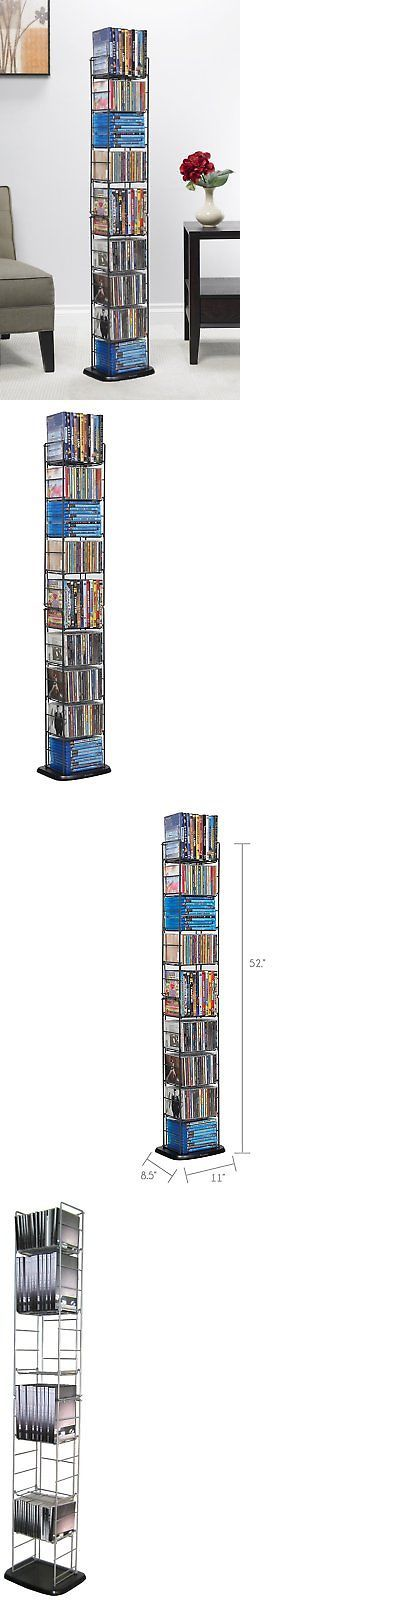 CD and Video Racks 22653: Multimedia Storage Cd Organizer Dvd Tower Rack Cabinet Movie Shelf Stand Media -> BUY IT NOW ONLY: $31.74 on eBay!